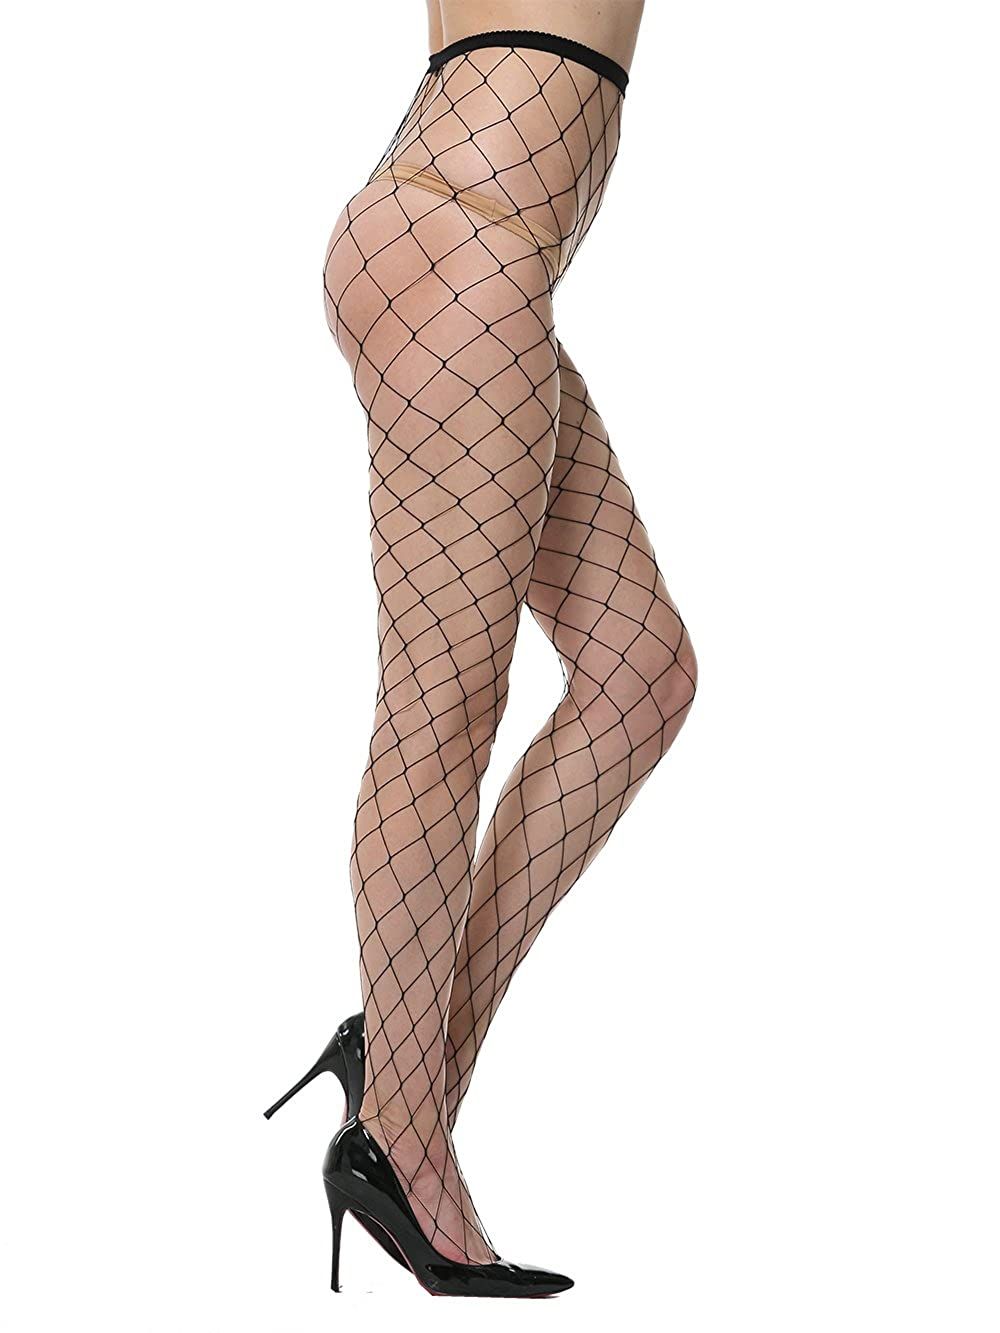 Florboom Womens Fishnet Stockings Fence Net Tights High Waisted Pantyhose 1385BKO